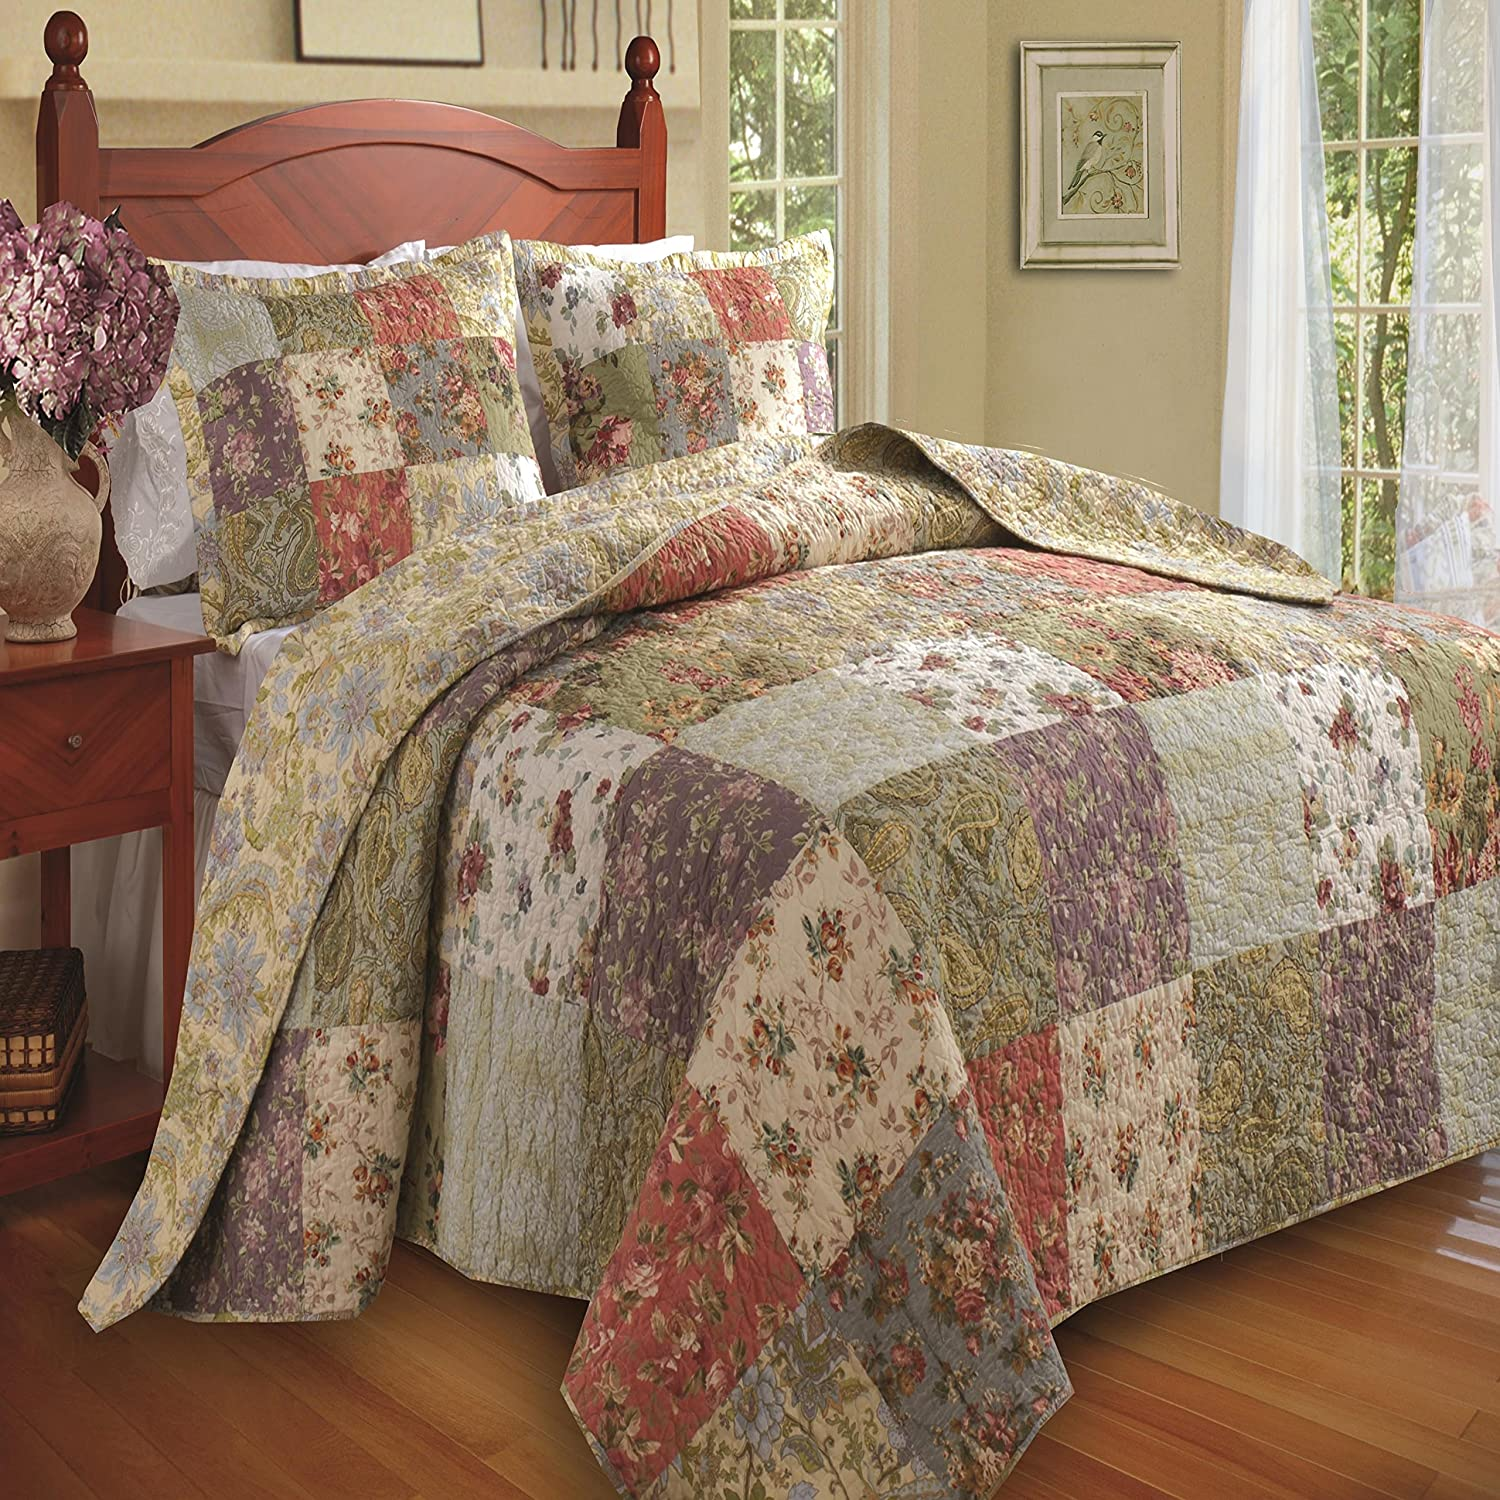 Greenland Home Blooming Prairie Twin 2-Piece Bedspread Set GL-0910NT